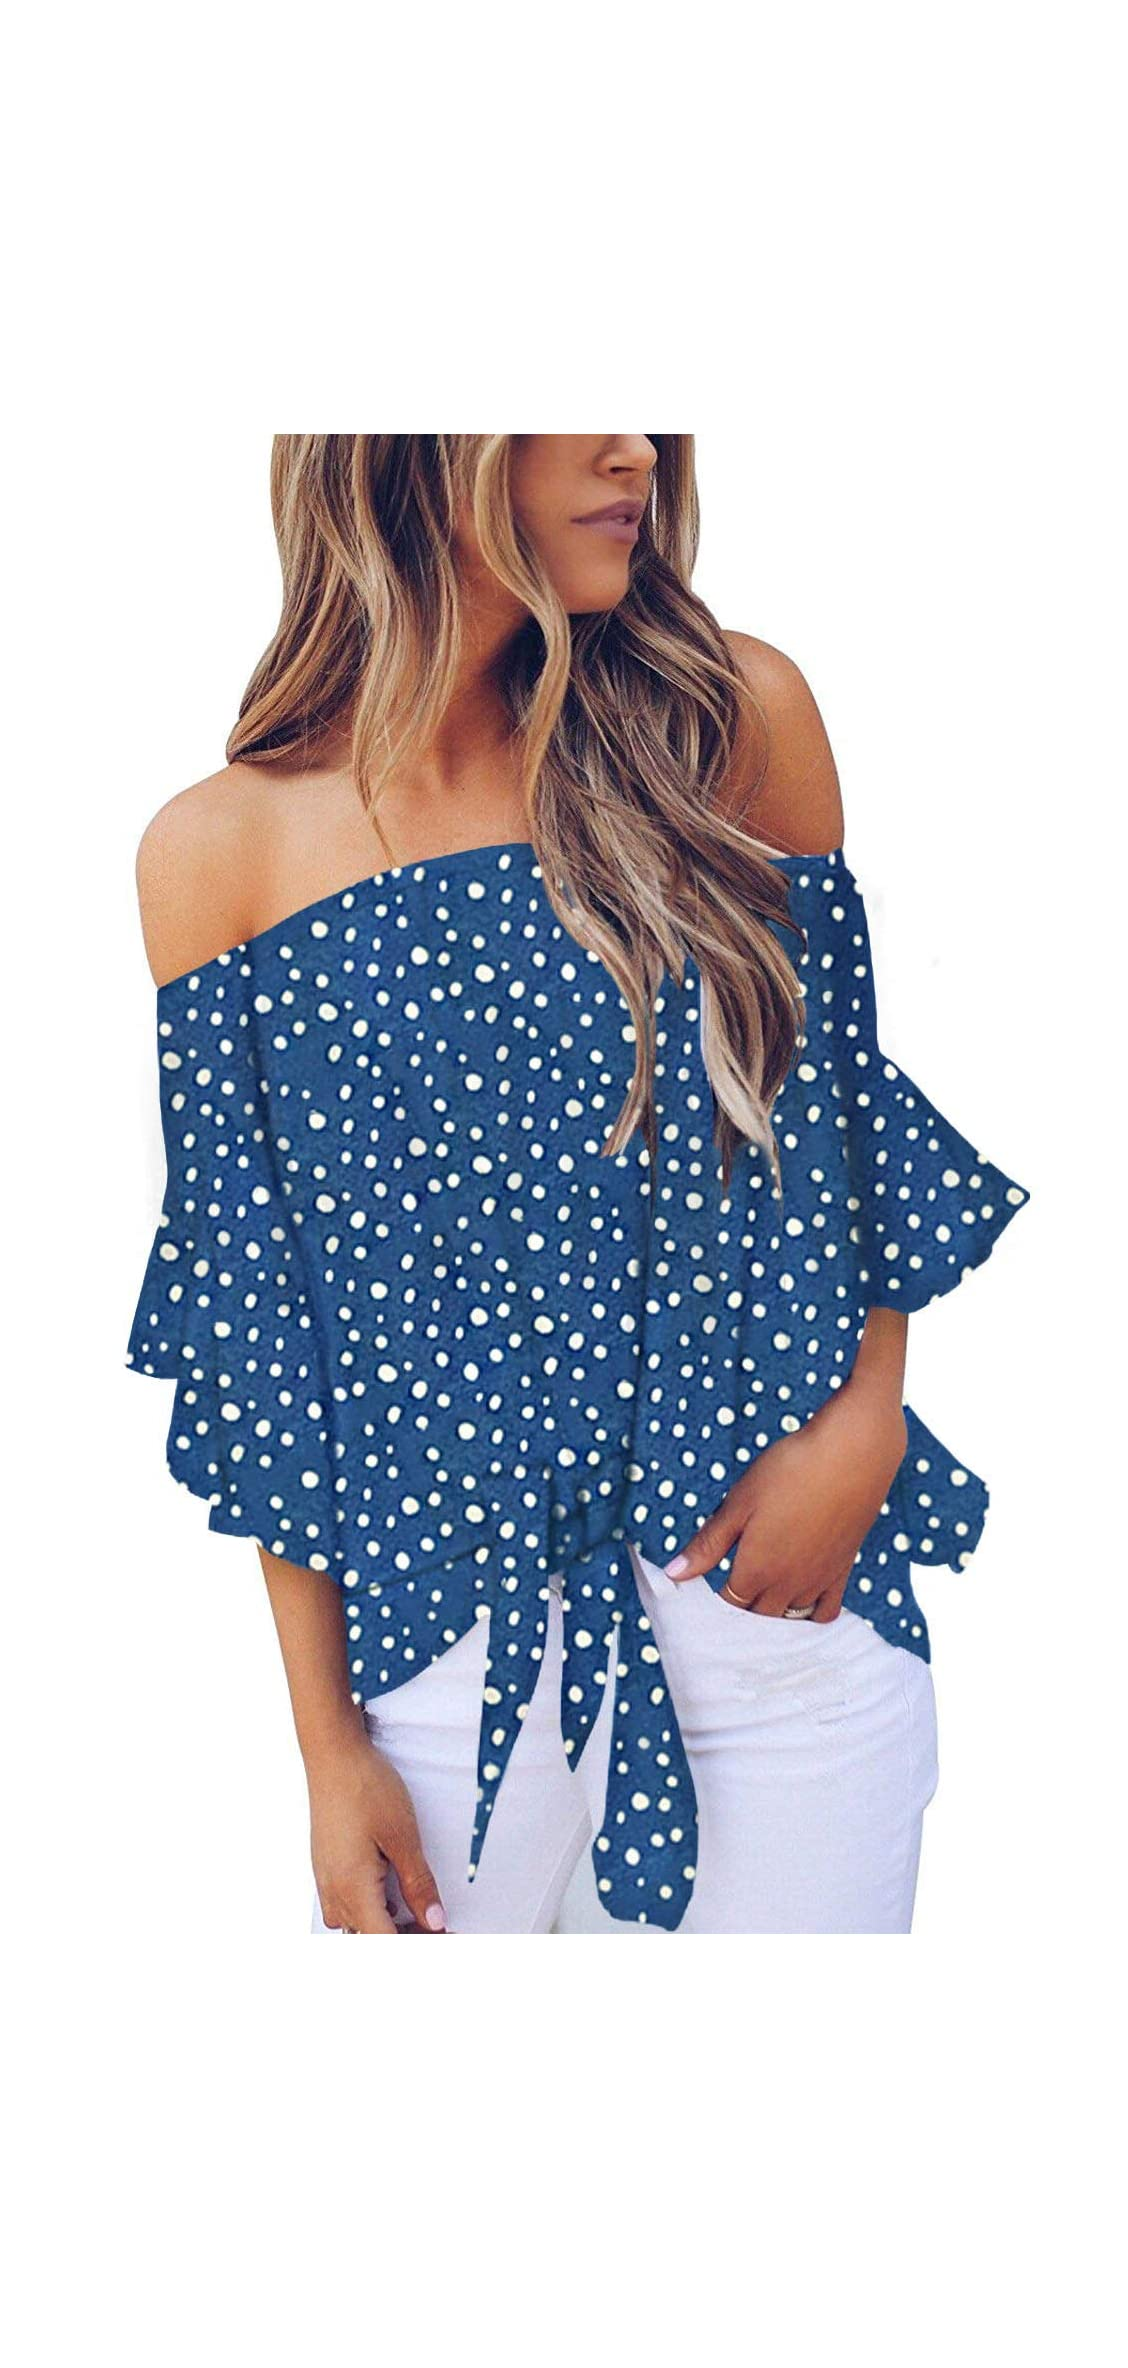 Womens Summer Floral Pinted Off The Shoulder Tops